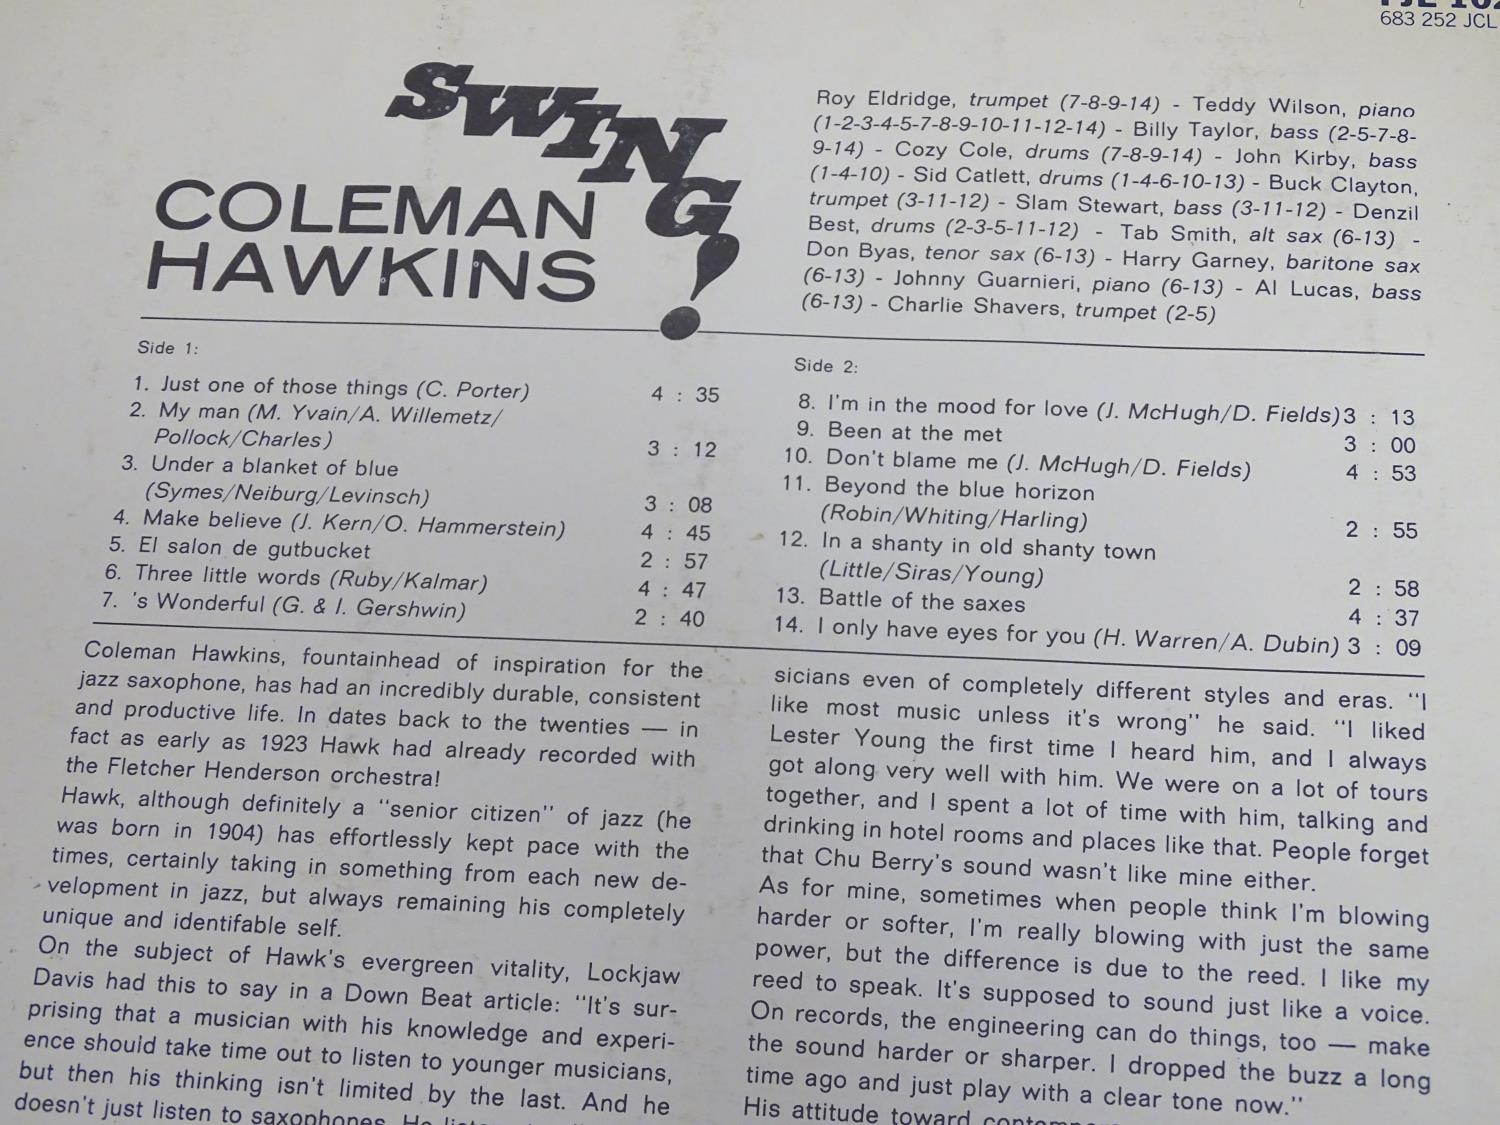 A collection of 20thC 33 rpm Vinyl records / LPs, Jazz, Big Band, Swing, comprising: Swing! (Coleman - Image 9 of 9